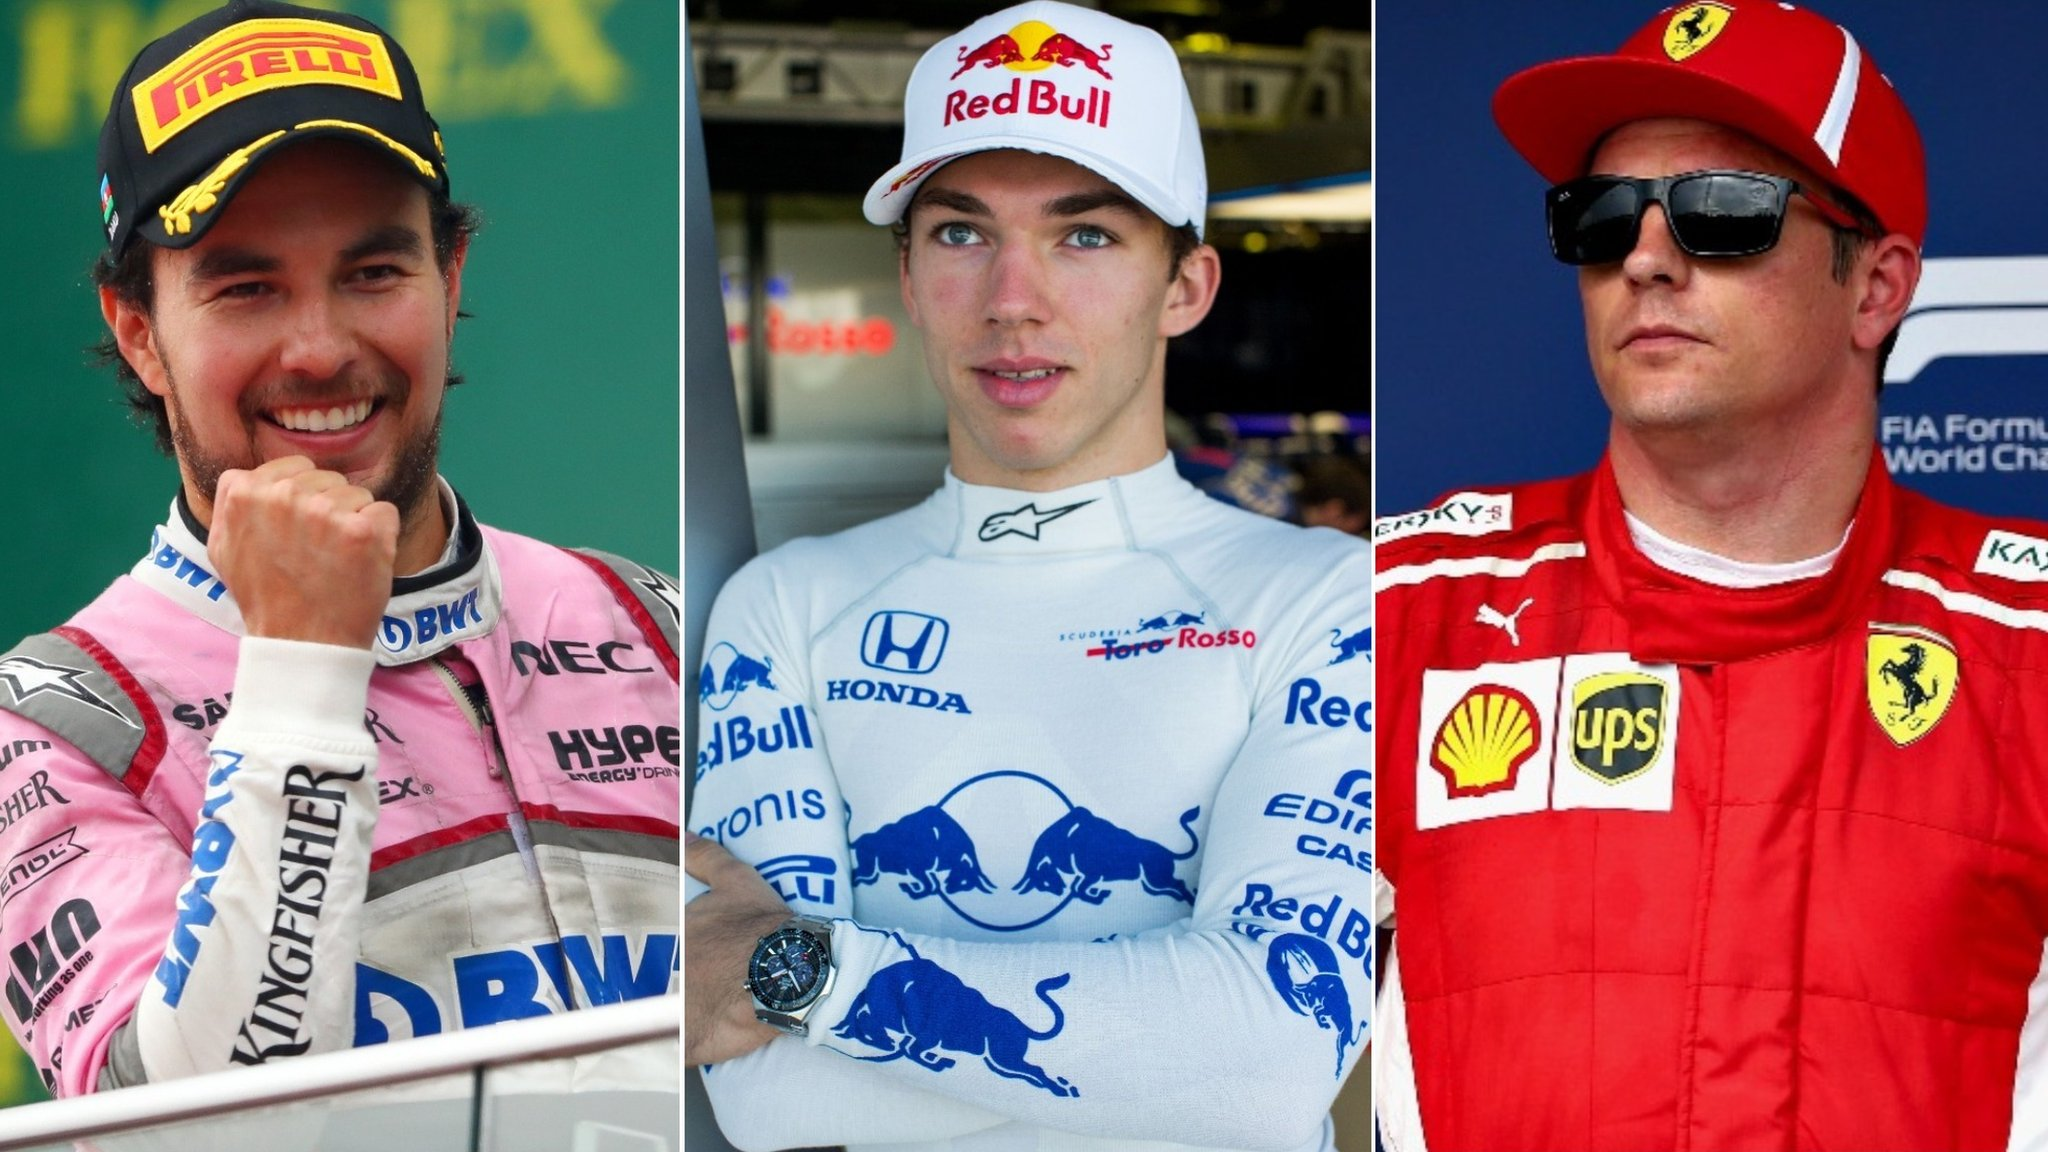 Vandoorne? Gasly? Raikkonen? Who do you want as the next Red Bull driver?